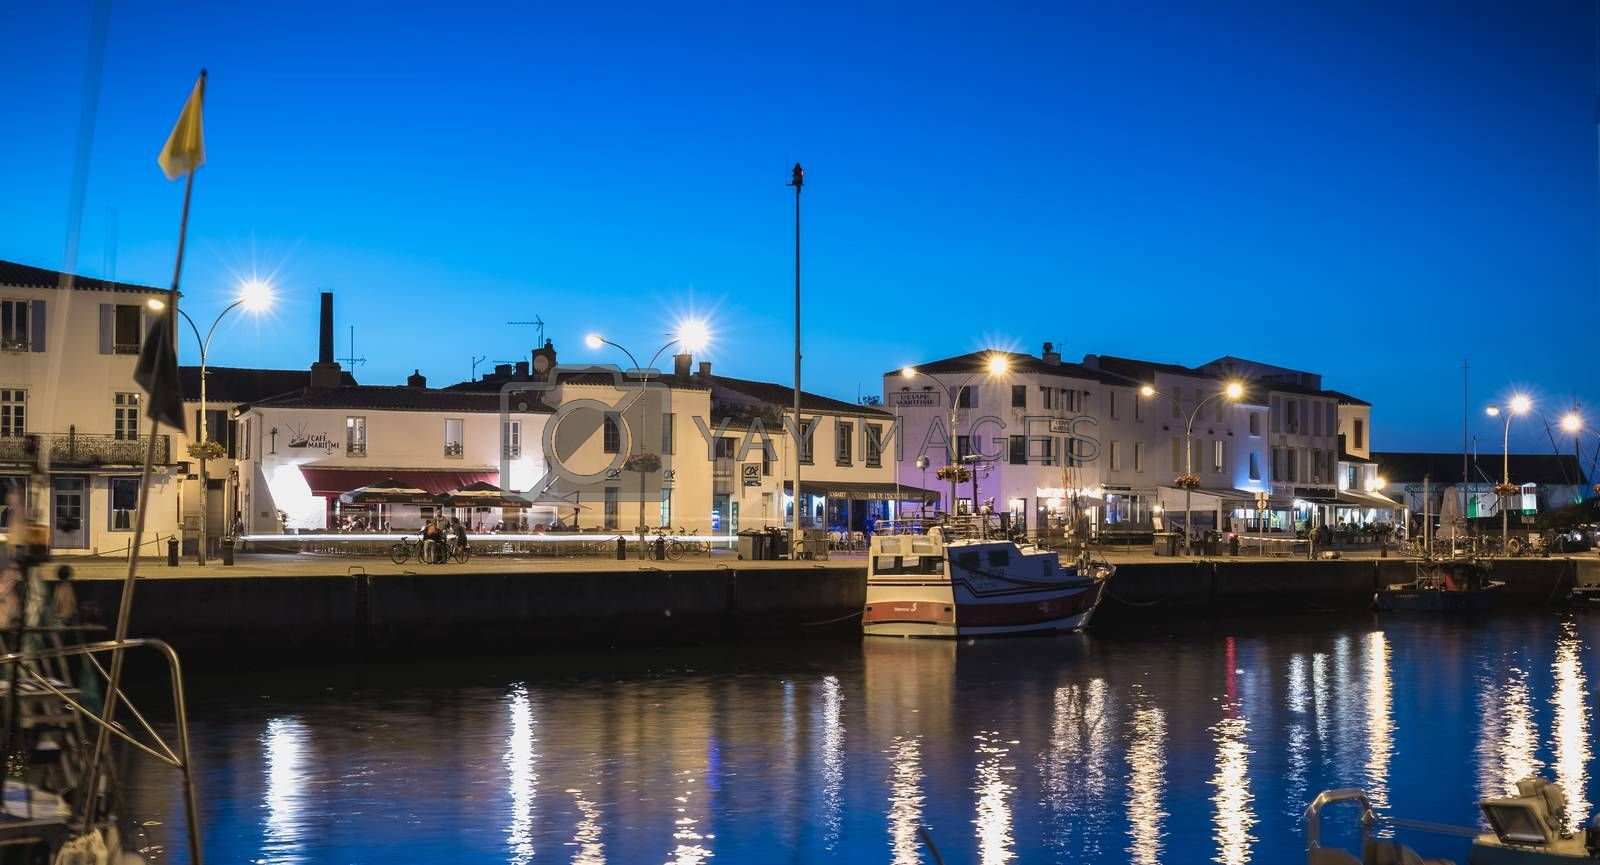 Port Joinville, France - September 19, 2018: view of the main port of the Yeu island with its picturesque architecture and its fishing boats at night on a fall day